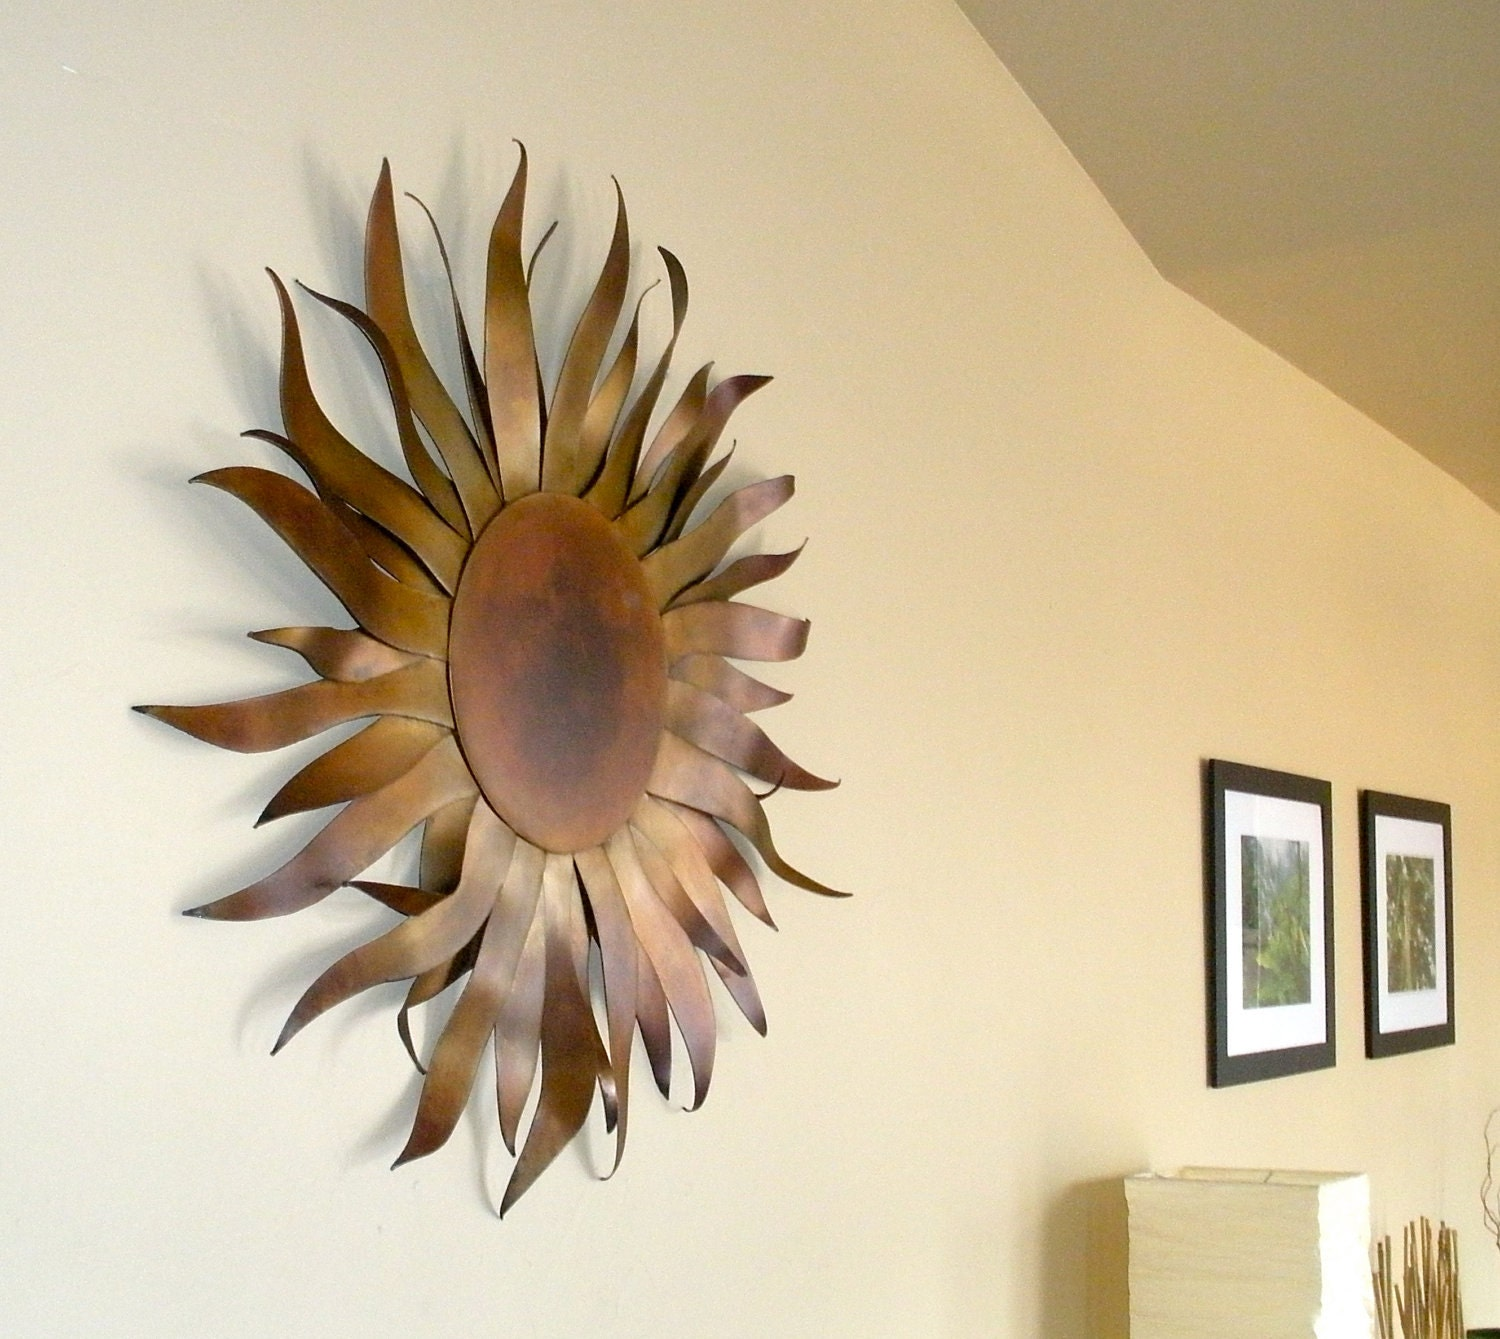 Astounding Sun Wall Decor Images Decors – Dievoon